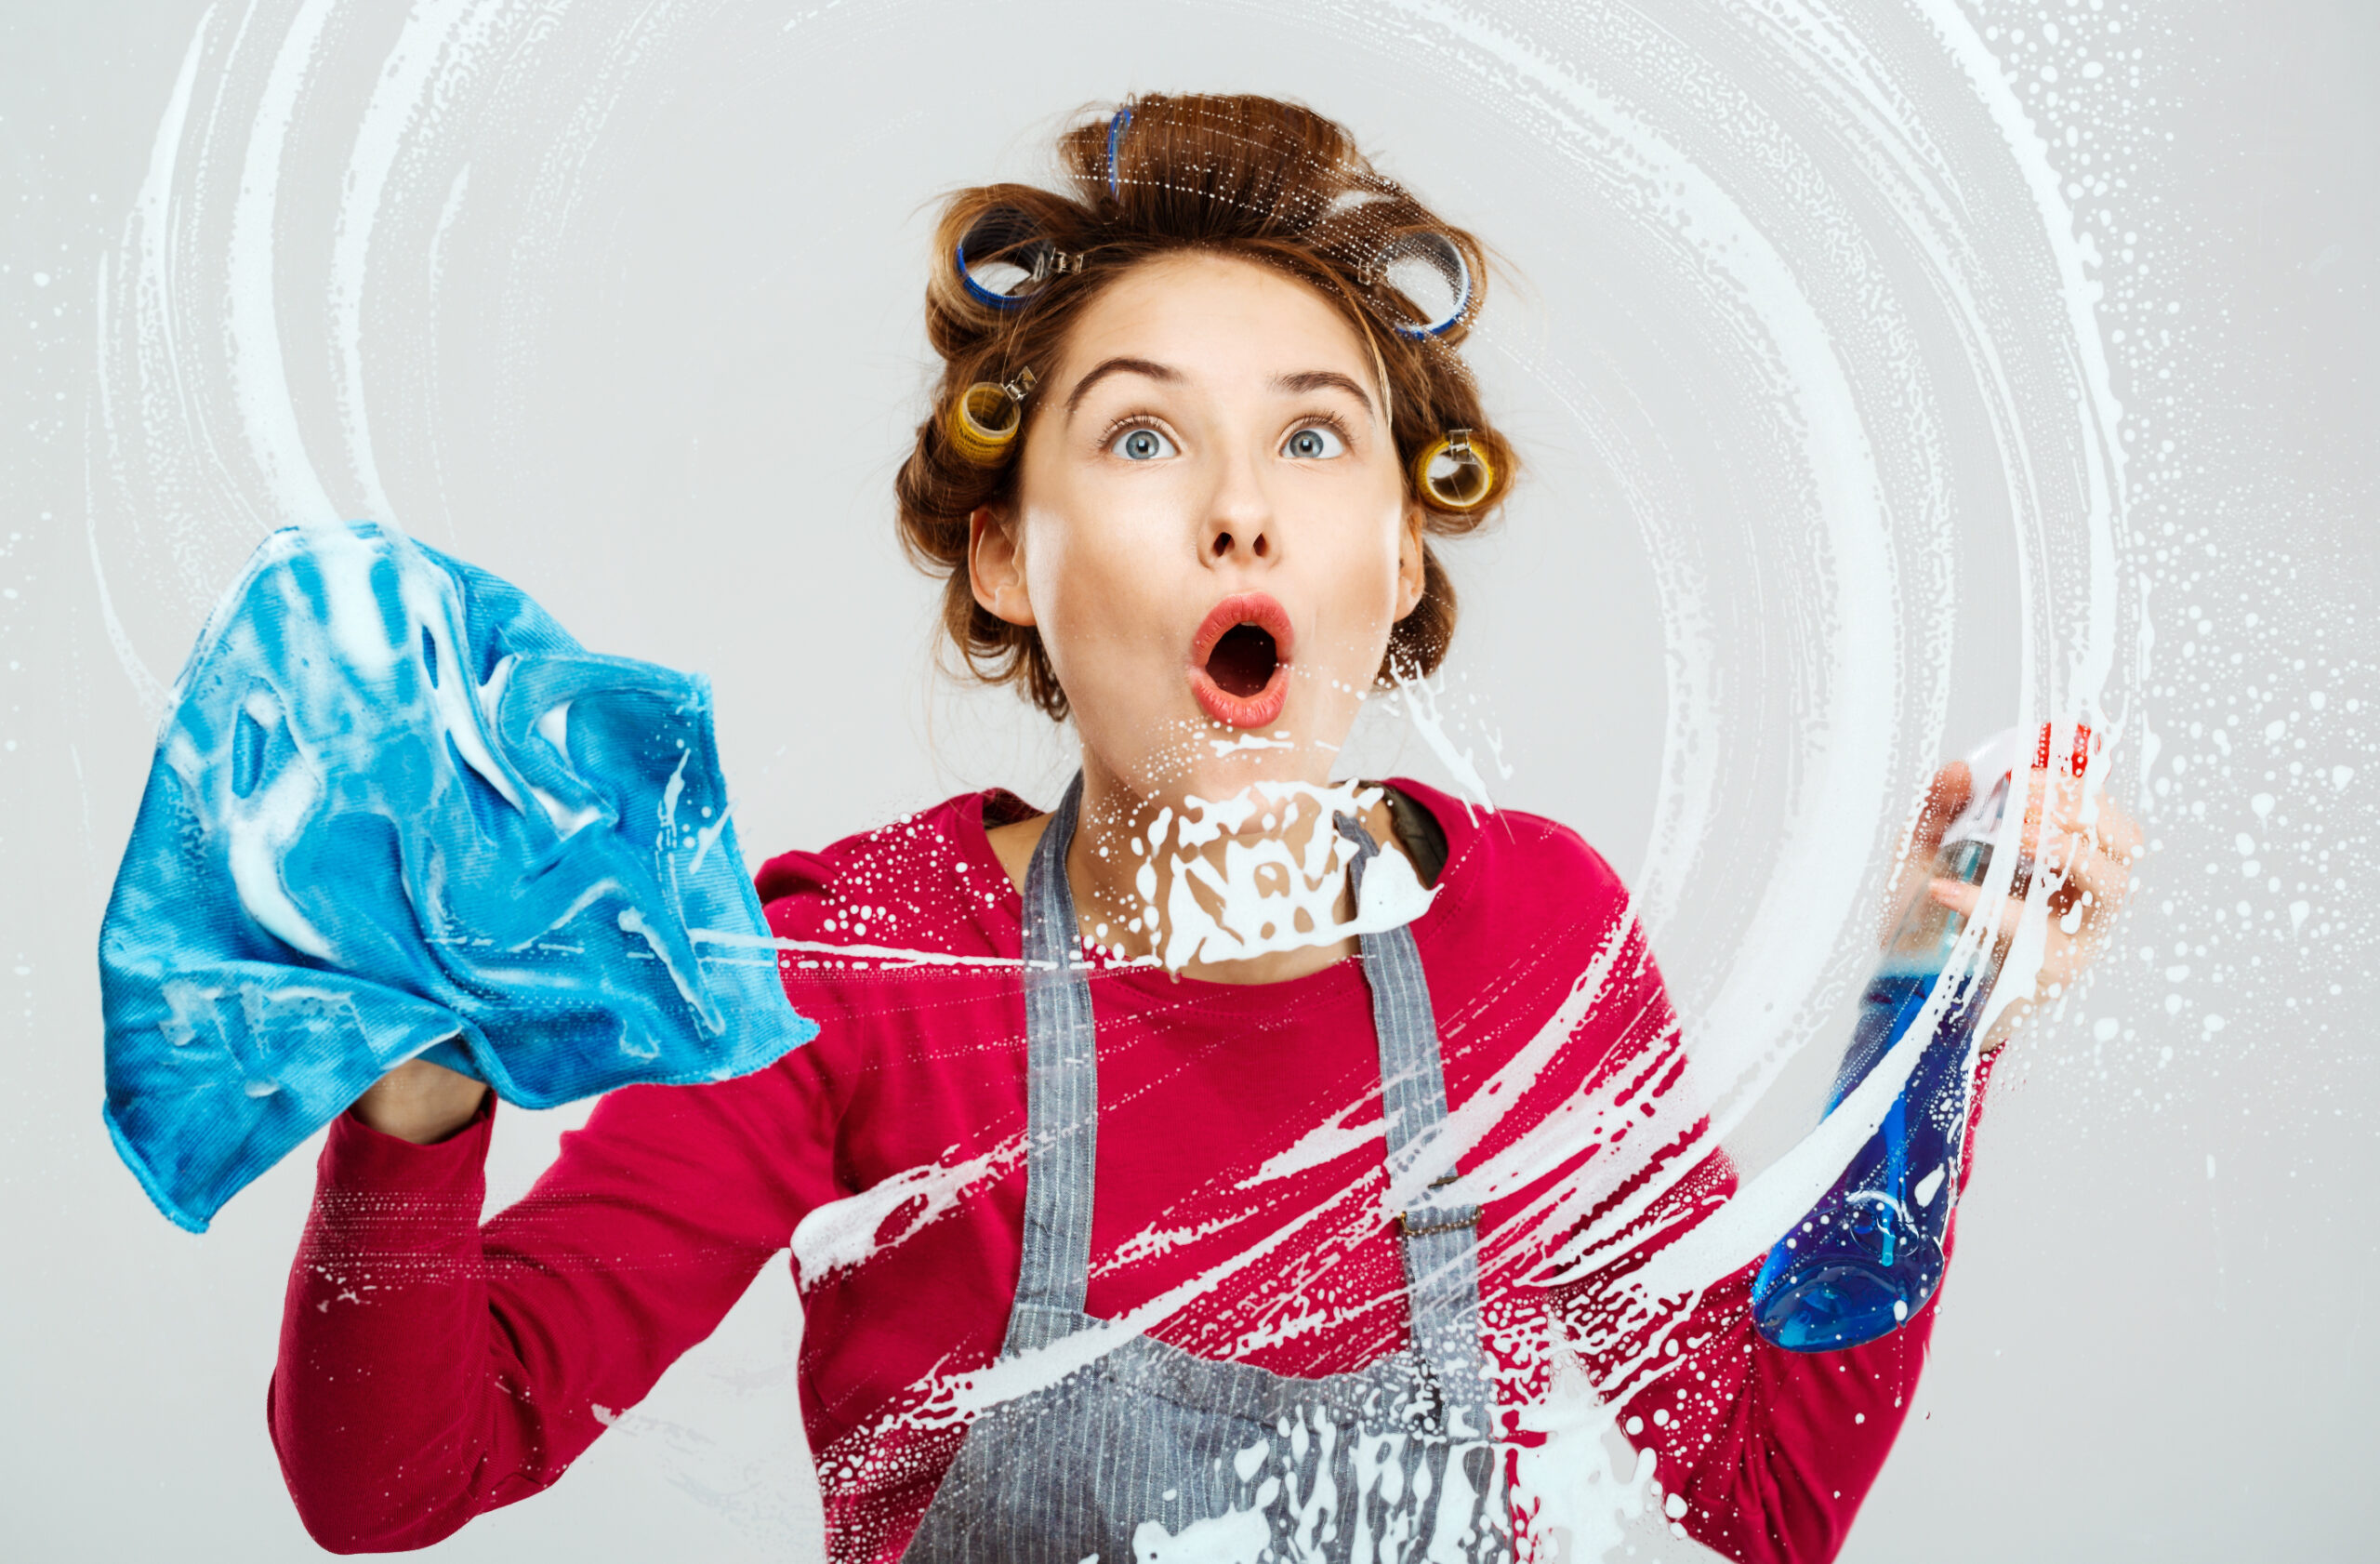 Cleaning Services | خدمات التنظيف